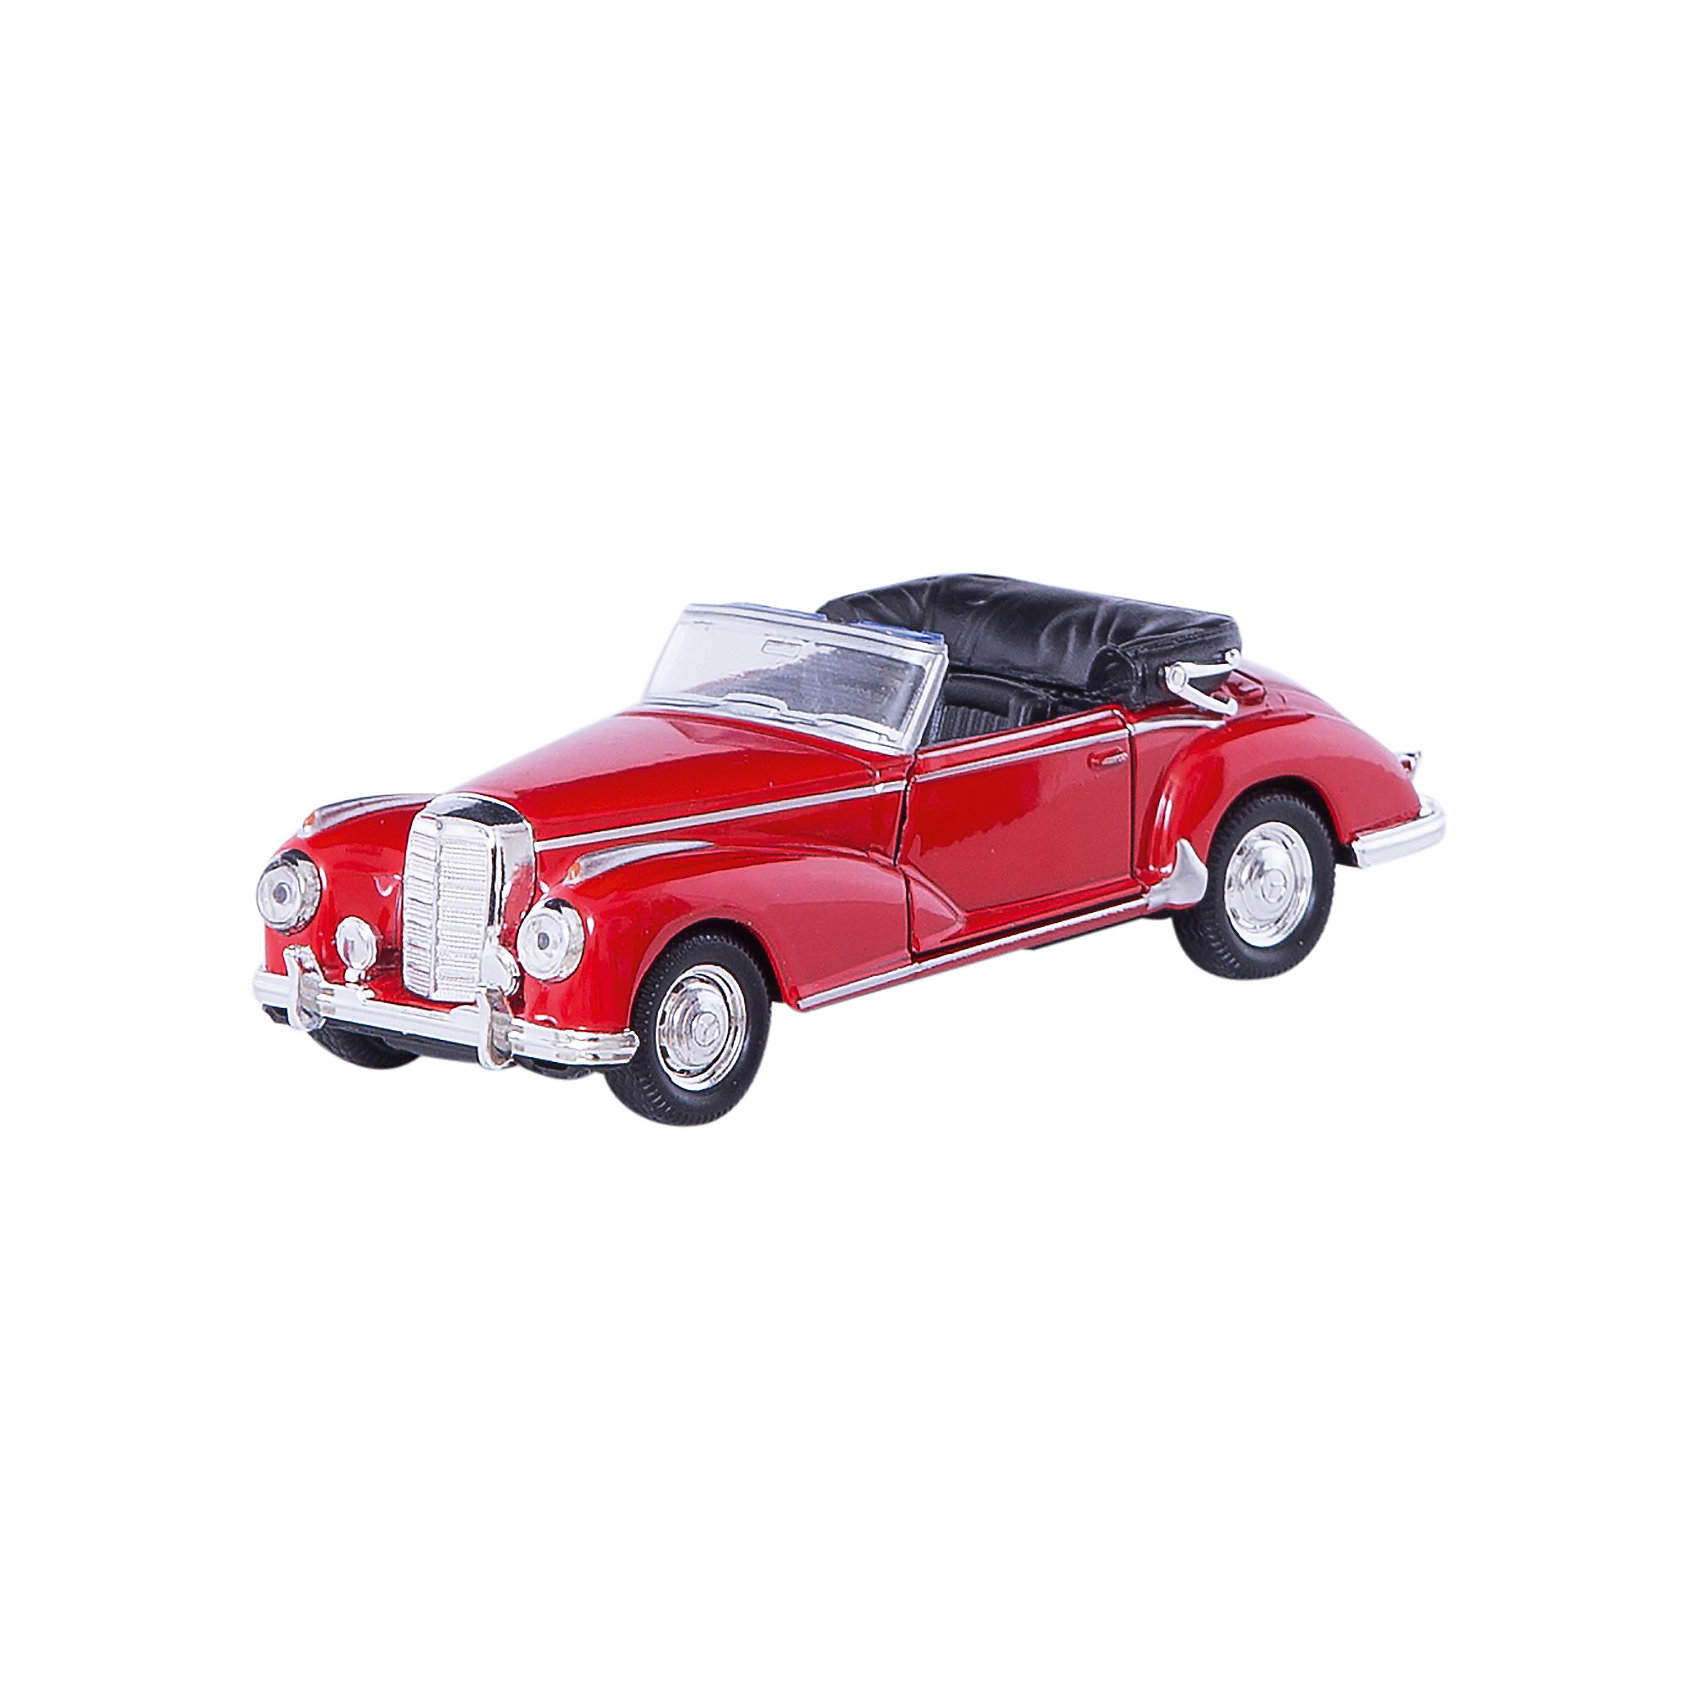 ������ ��������� ������ 1:34-39 Mercedes-Benz 300S 1955, Welly